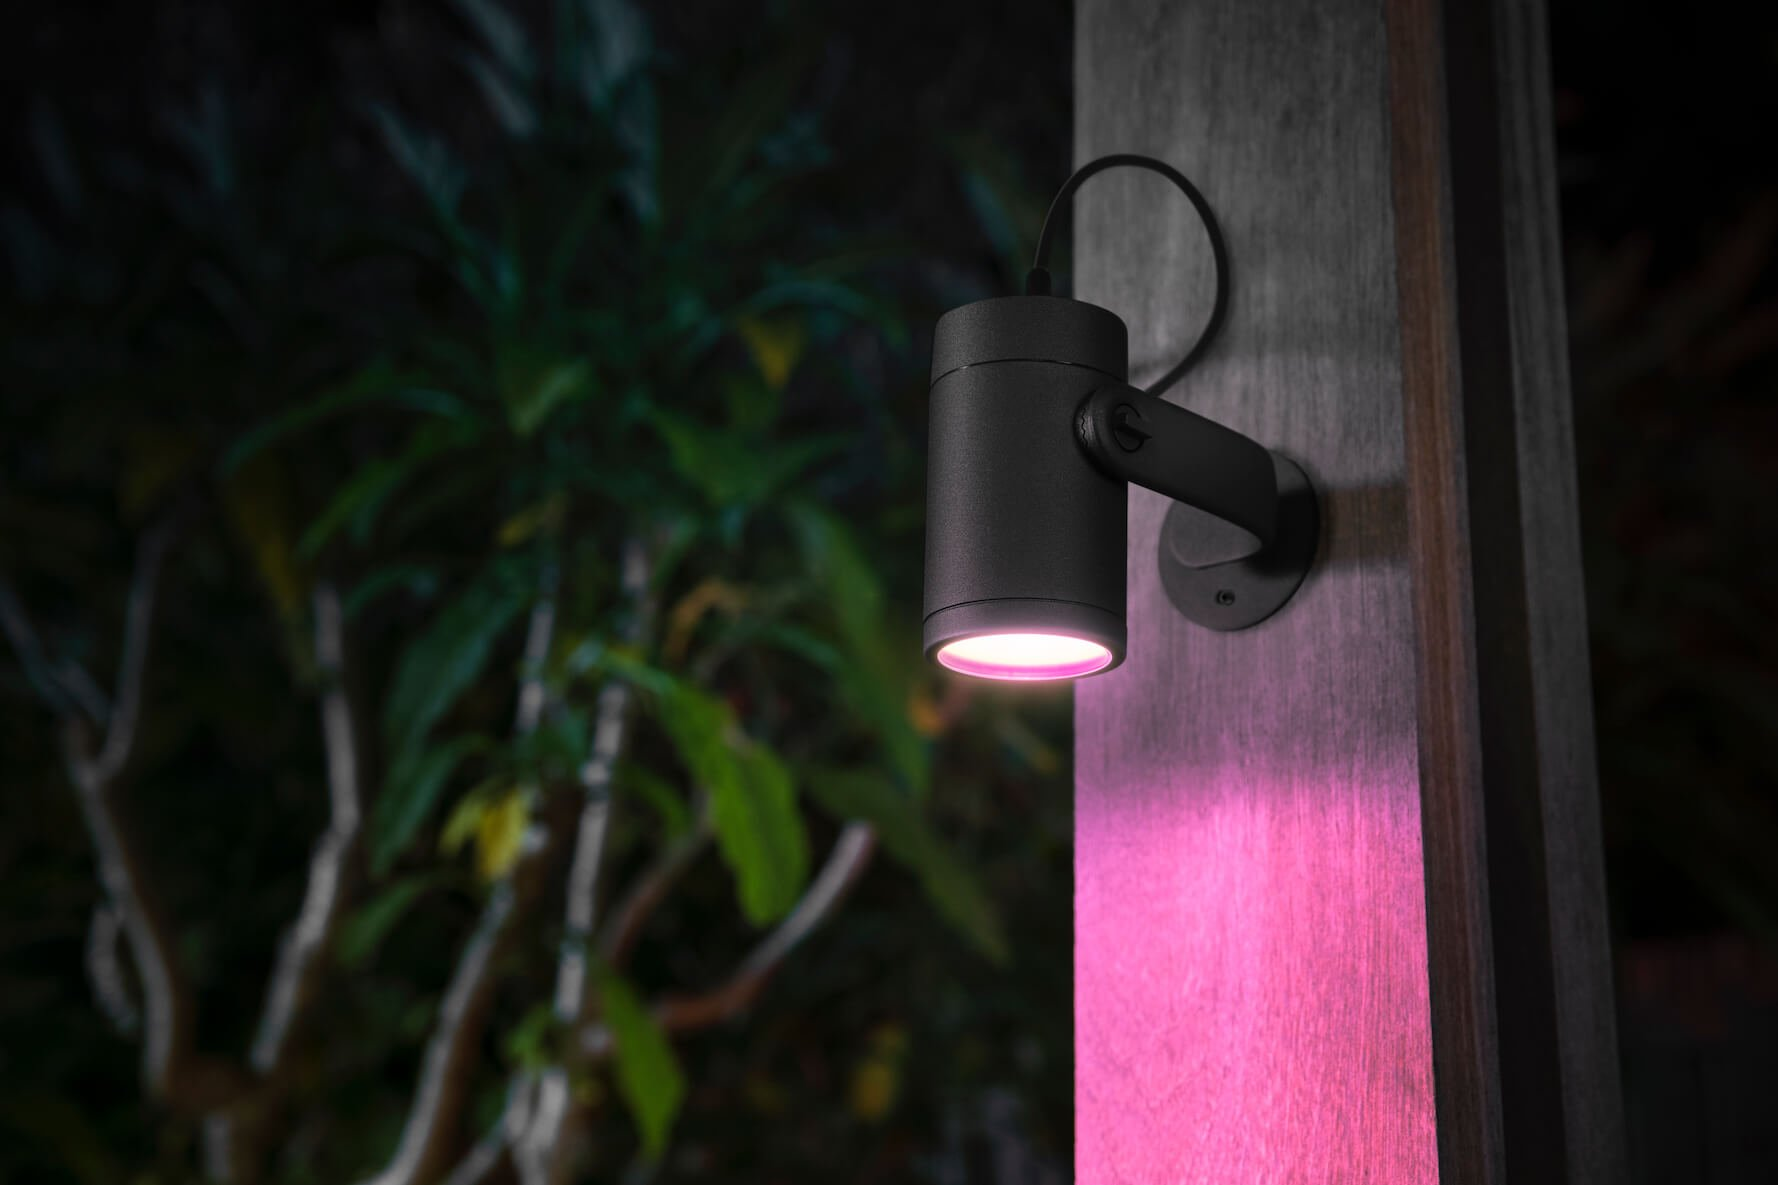 Philips Hue Lily spot light mounted onto a wall